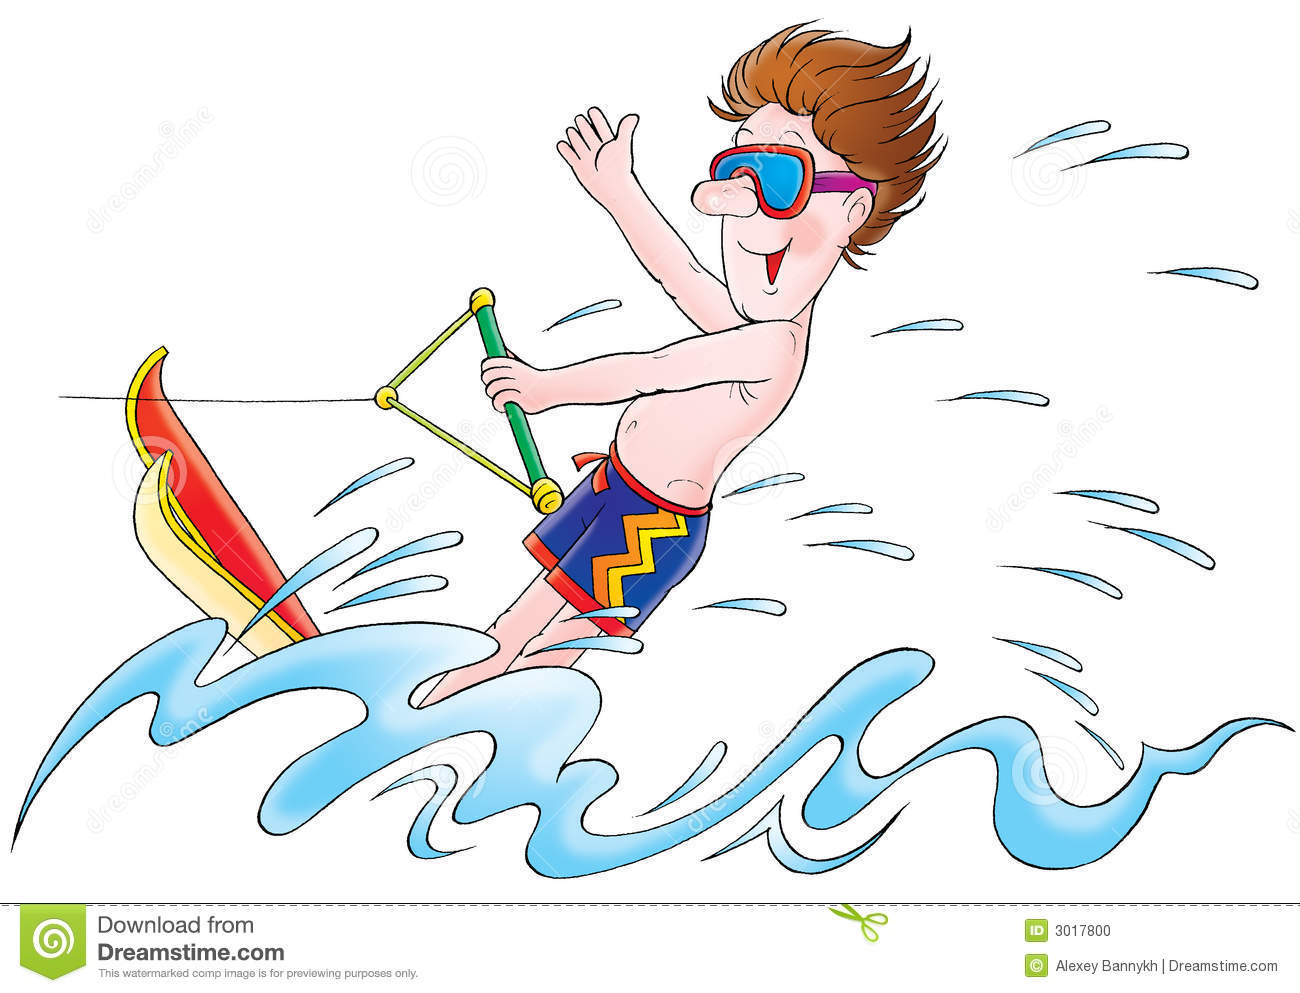 Water Skiing Clipart Water Ski Clip Art Water Ski #ba8n0A.